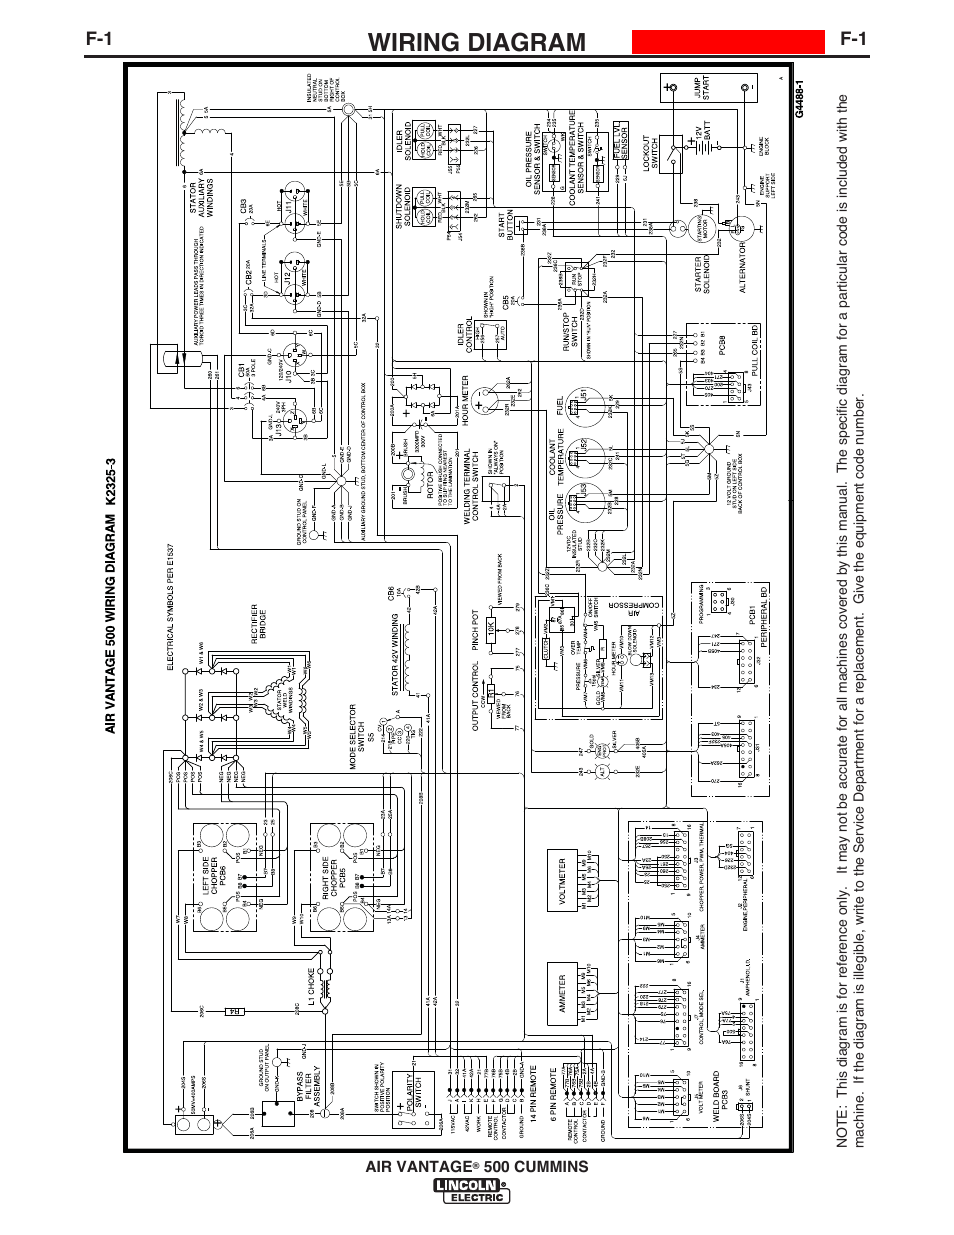 Wiring diagram | Lincoln Electric IM10065 AIR VANTAGE 500 CUMMINS User  Manual | Page 39 / 54